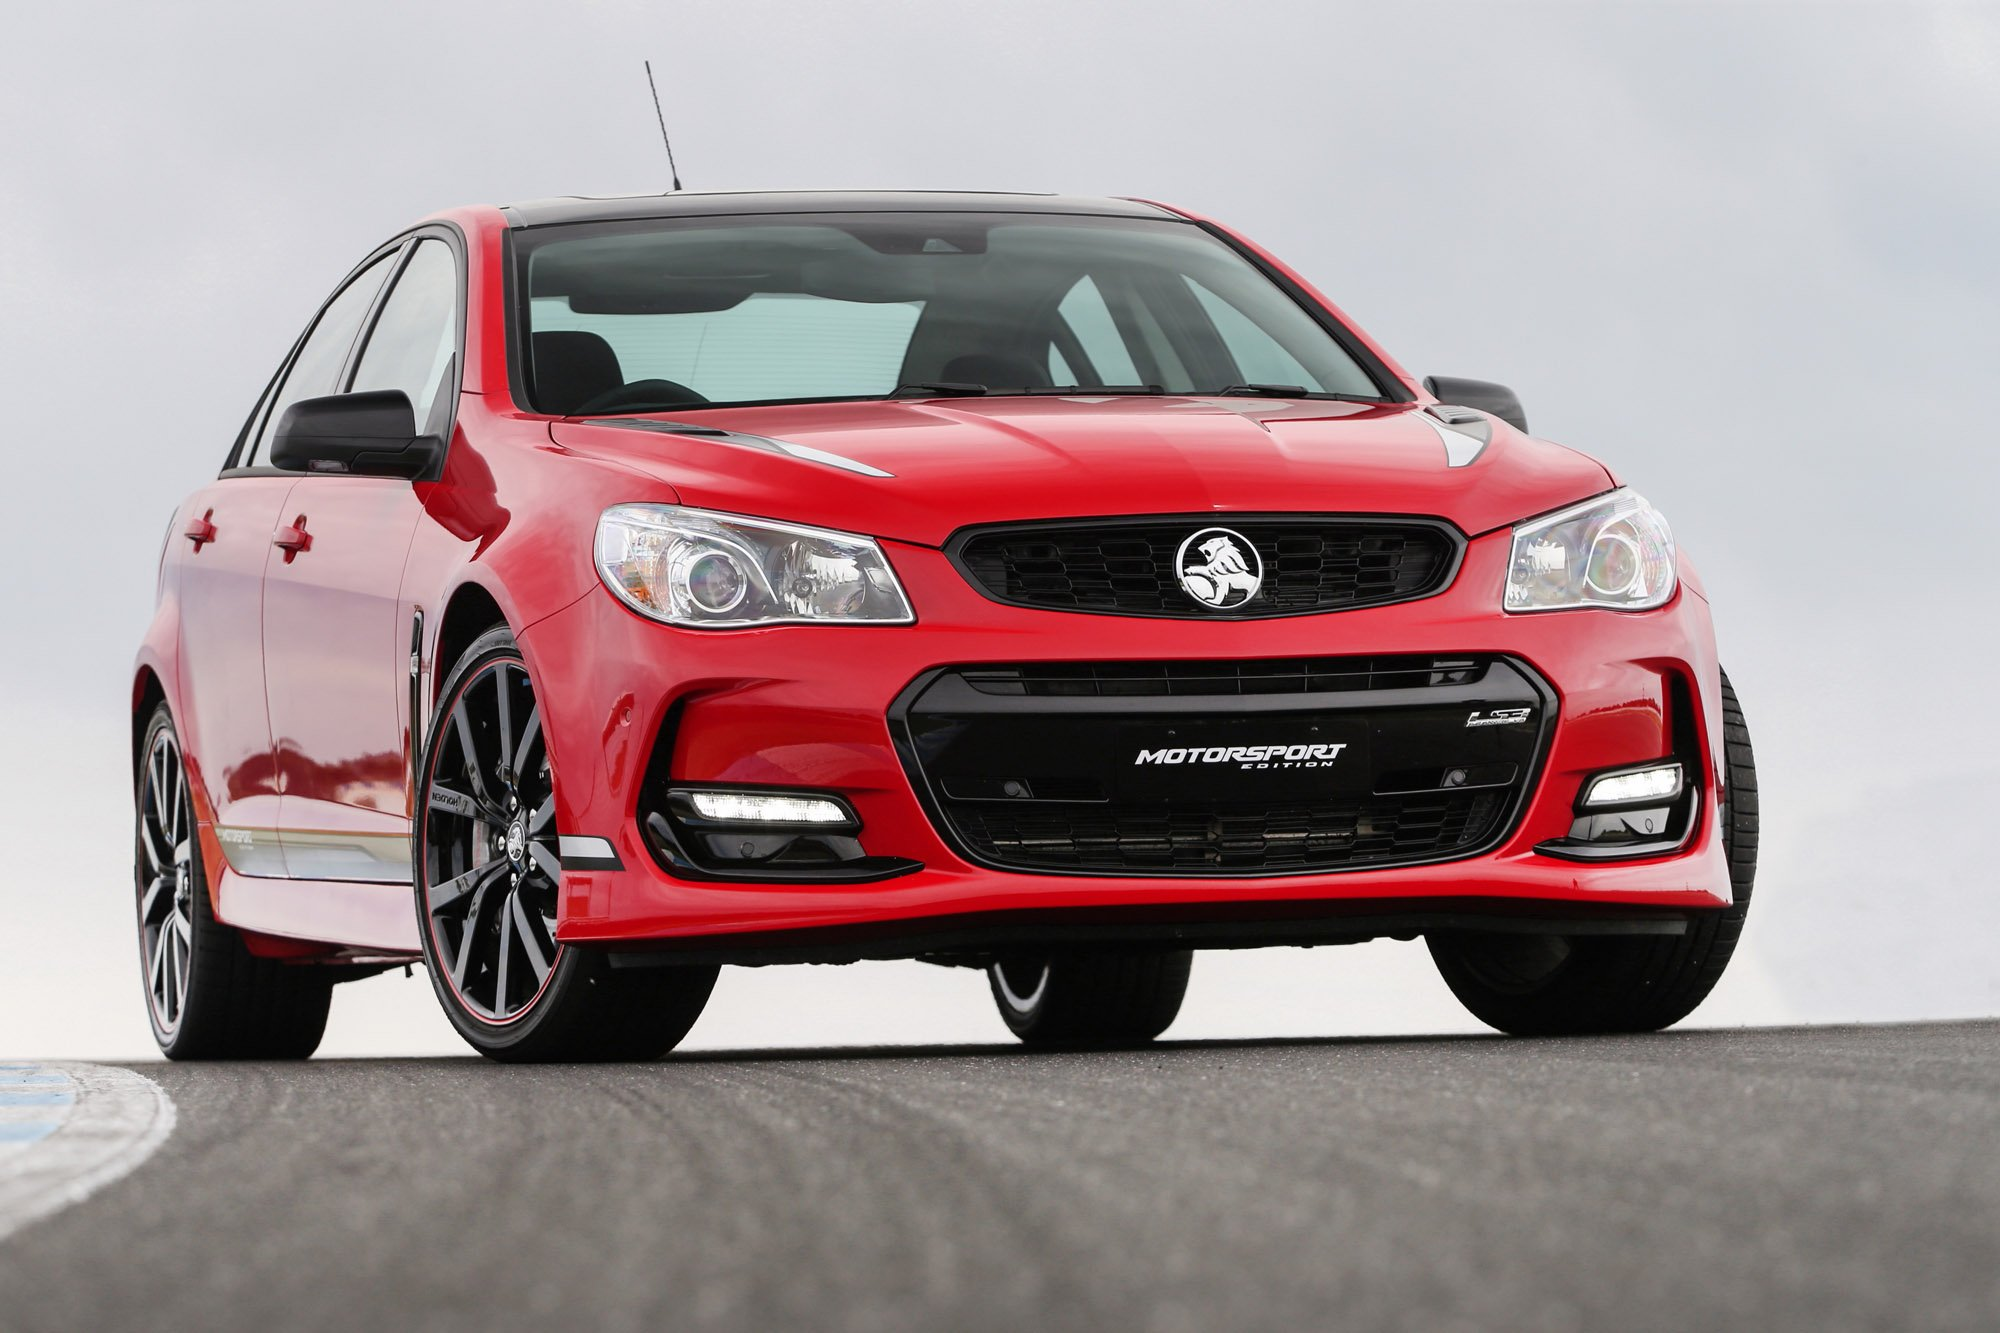 2017 Holden Commodore Magnum Ute review